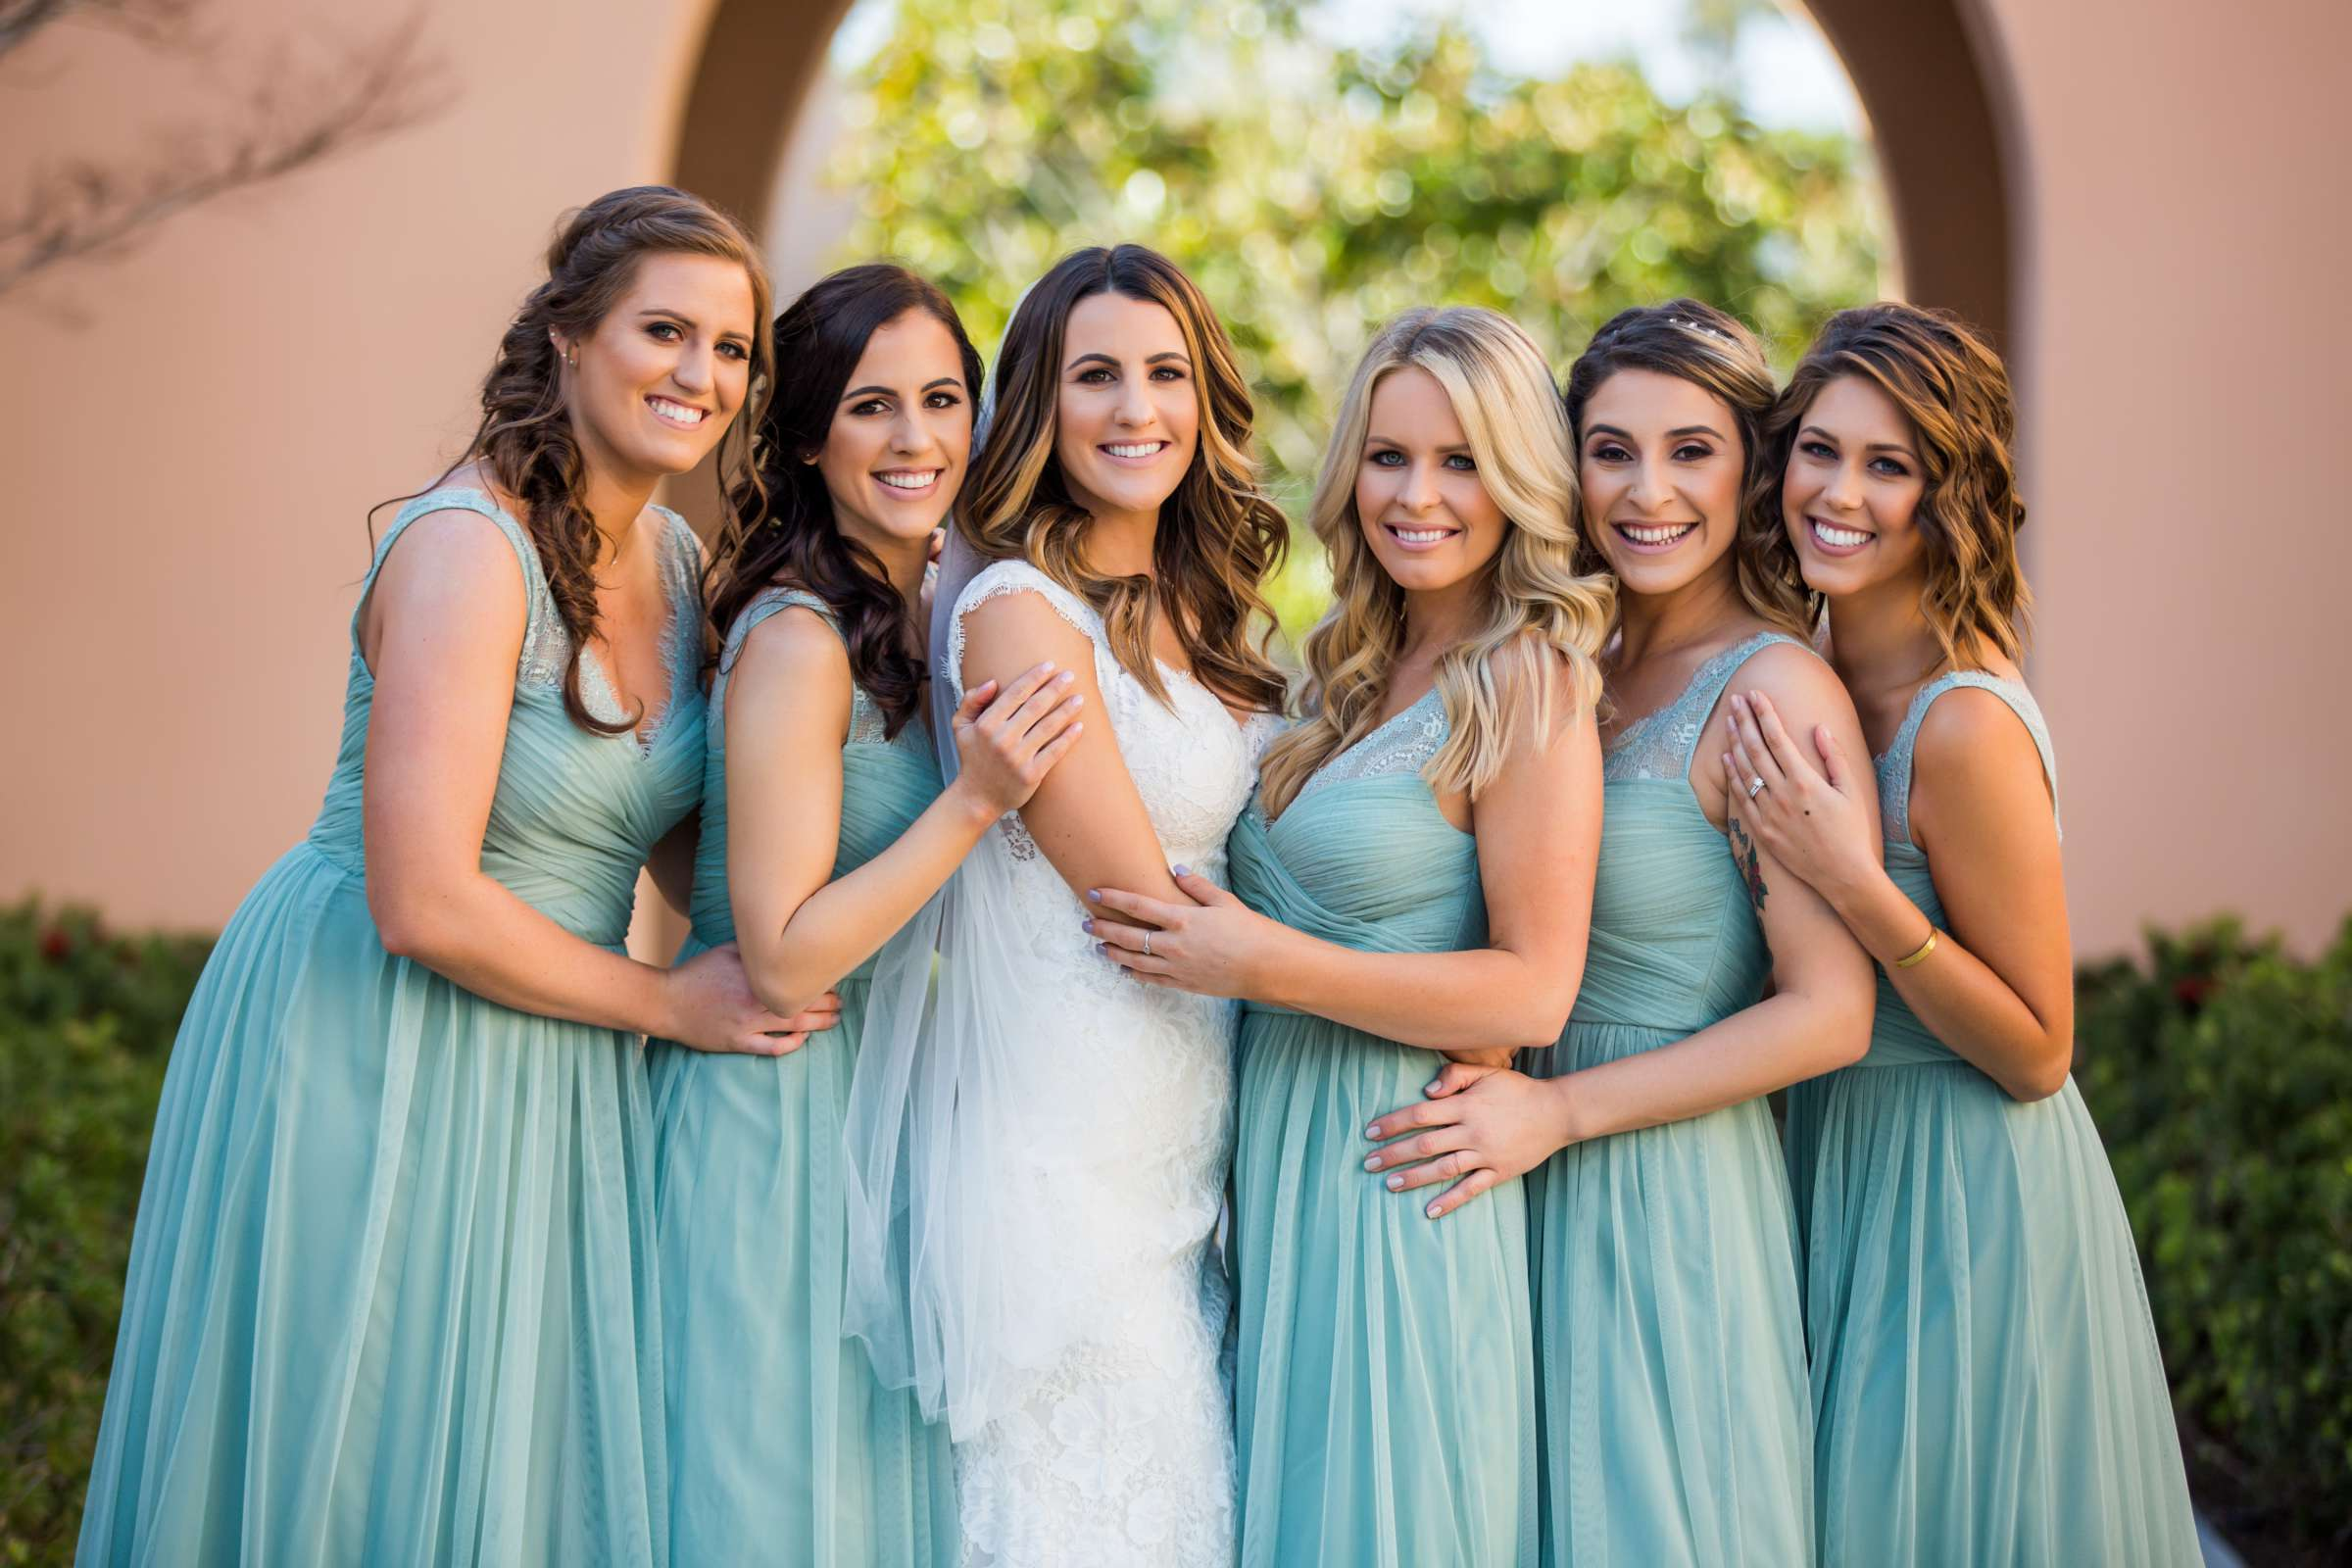 a8d4181eca3 Bridesmaids Gallery